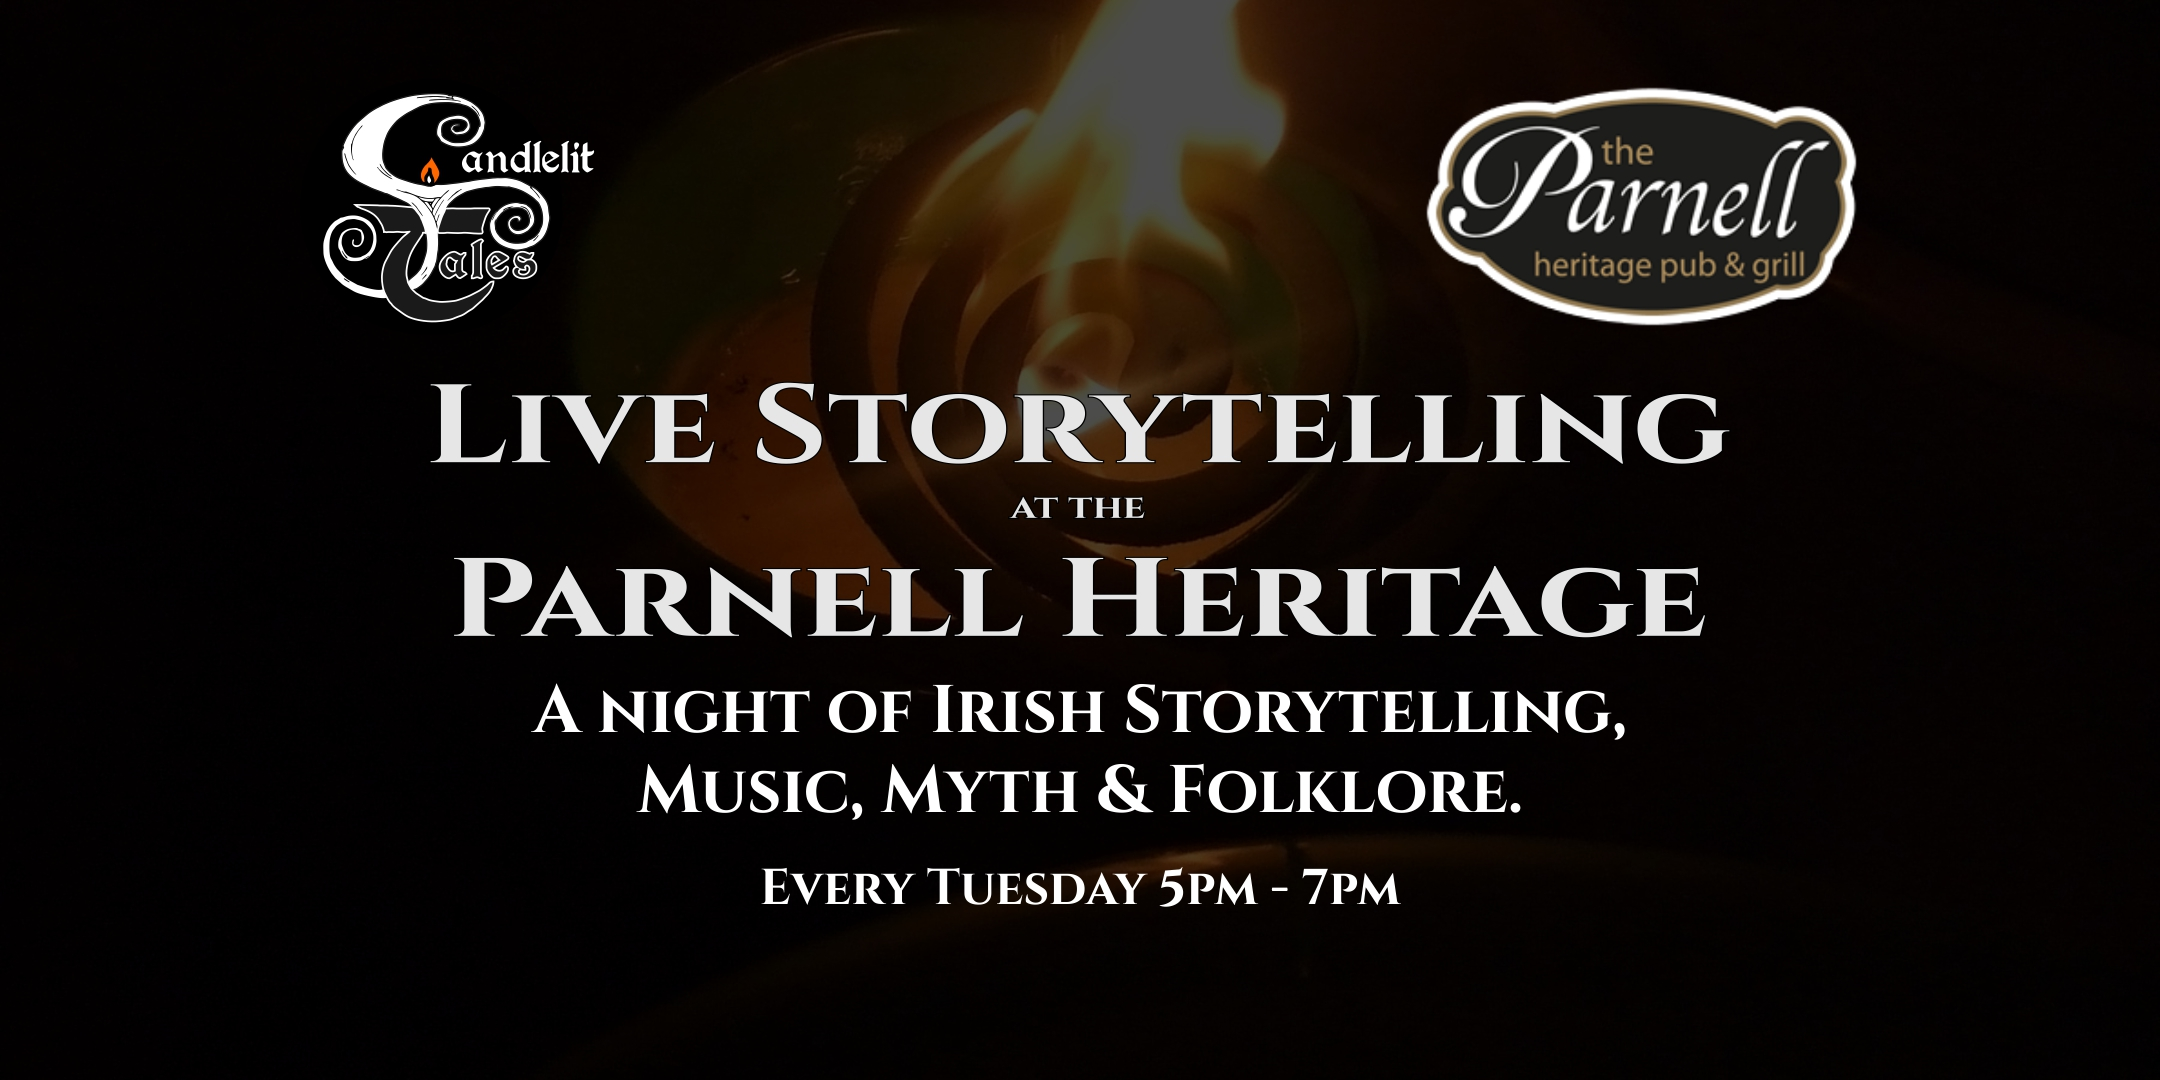 CT-GRAPHICS-Parnell_heritage-FB-EVENT - CandlelitTales Traditional Irish Storytelling.jpg